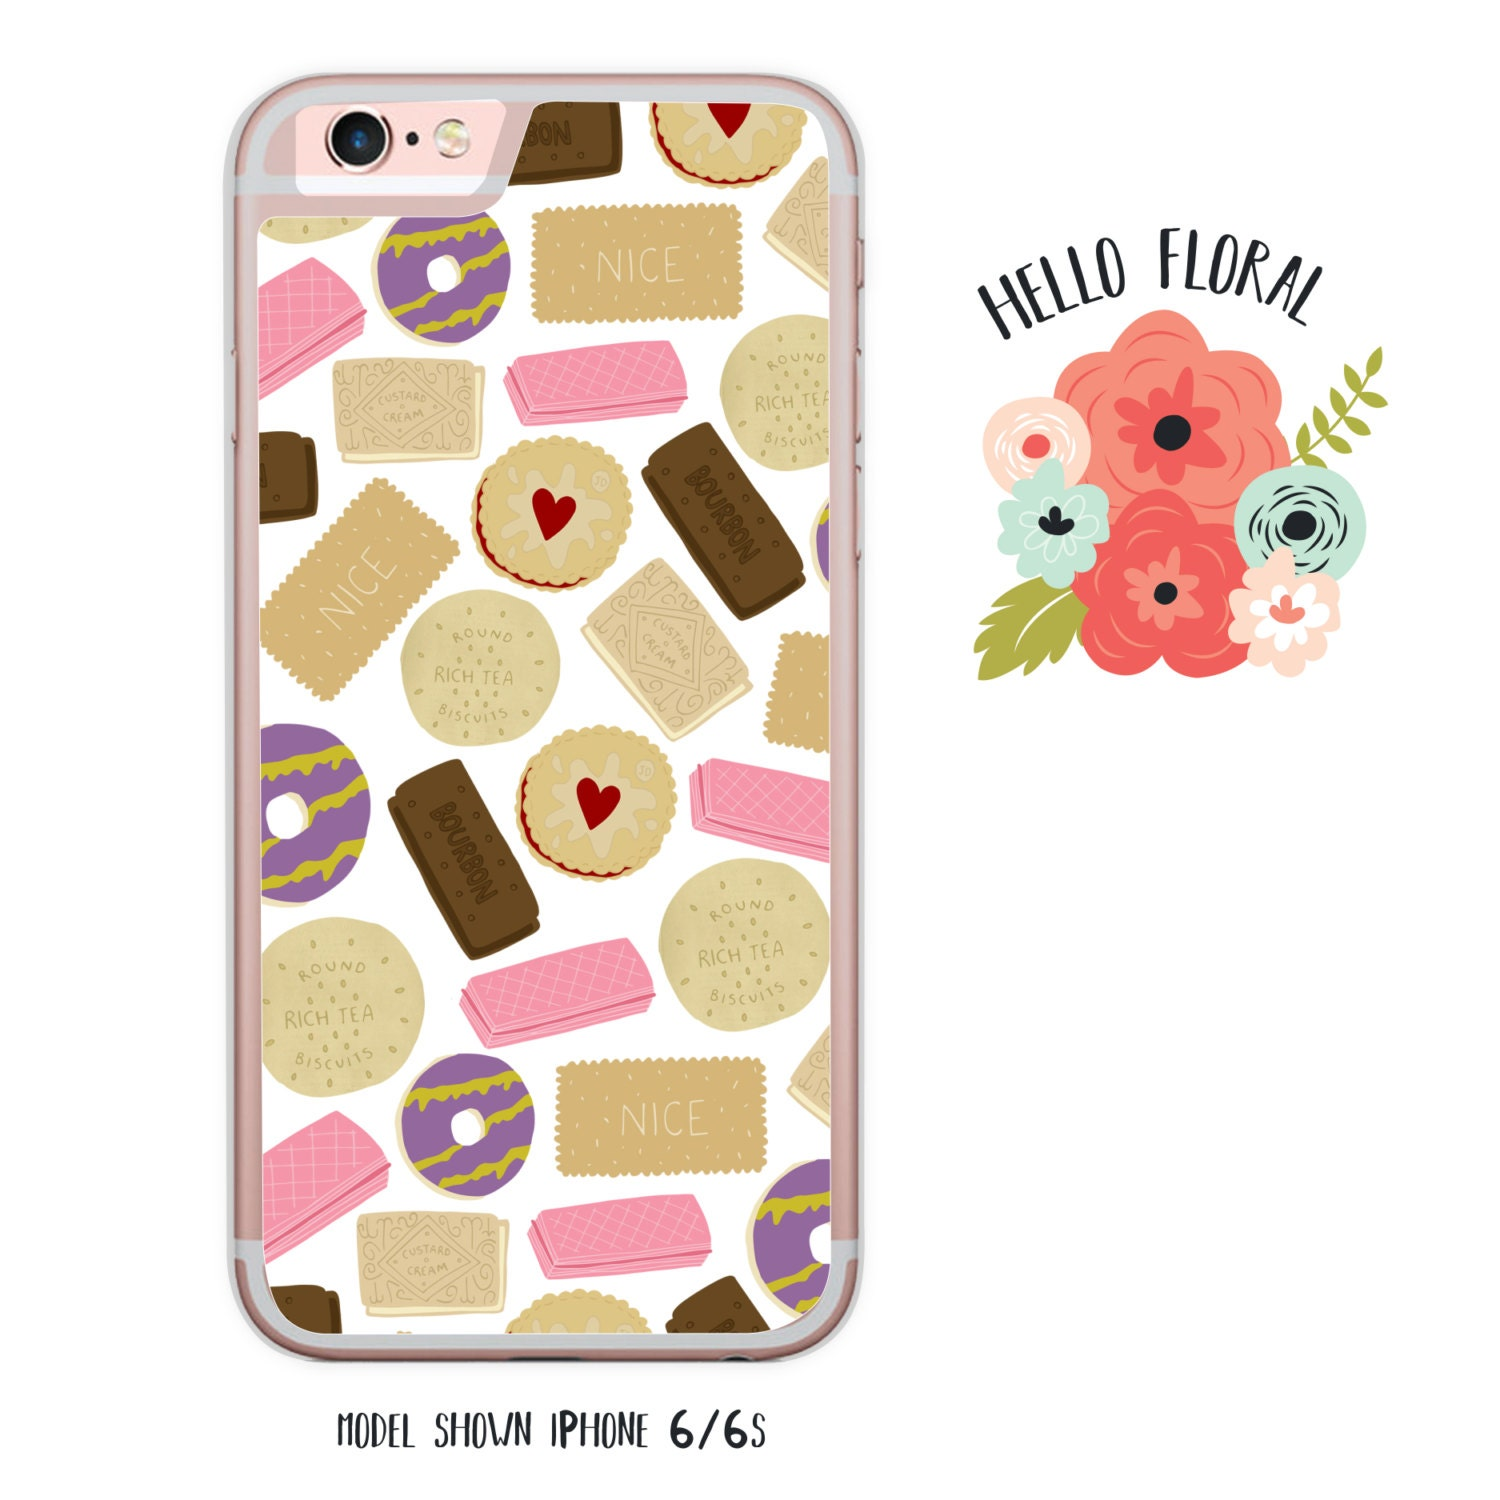 Classic Biscuits iPhone Samsung Galaxy iPod Touch hard case